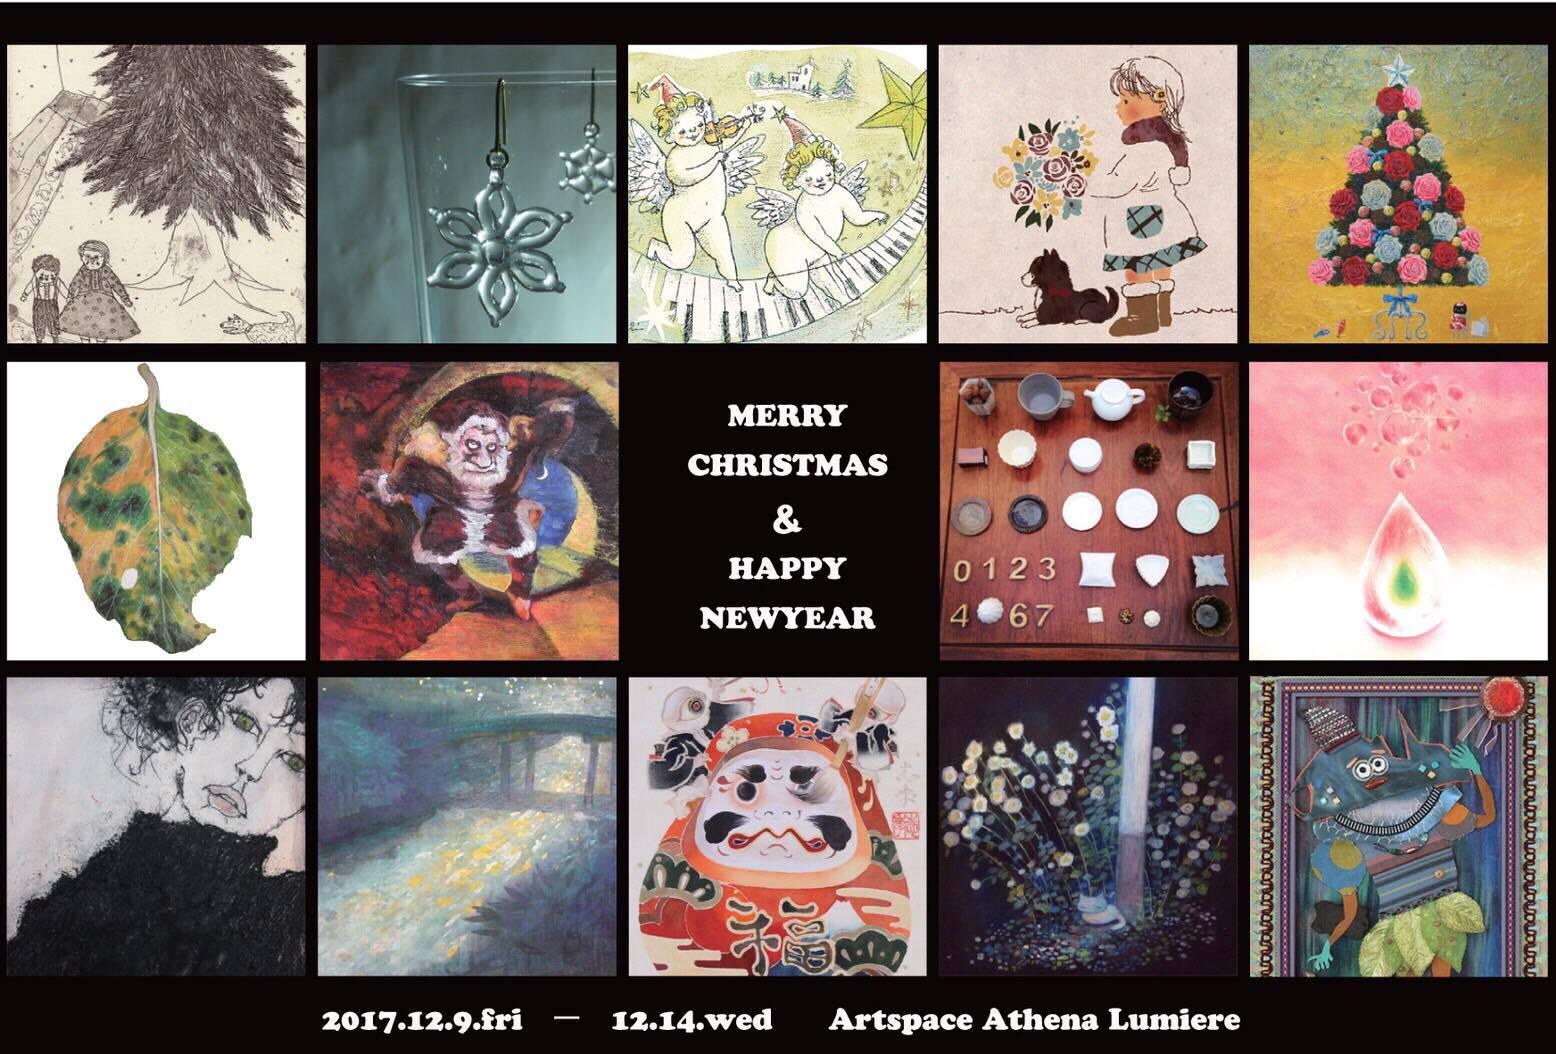 MERRY CHRISTMAS & HAPPY NEW YEAR exhibition